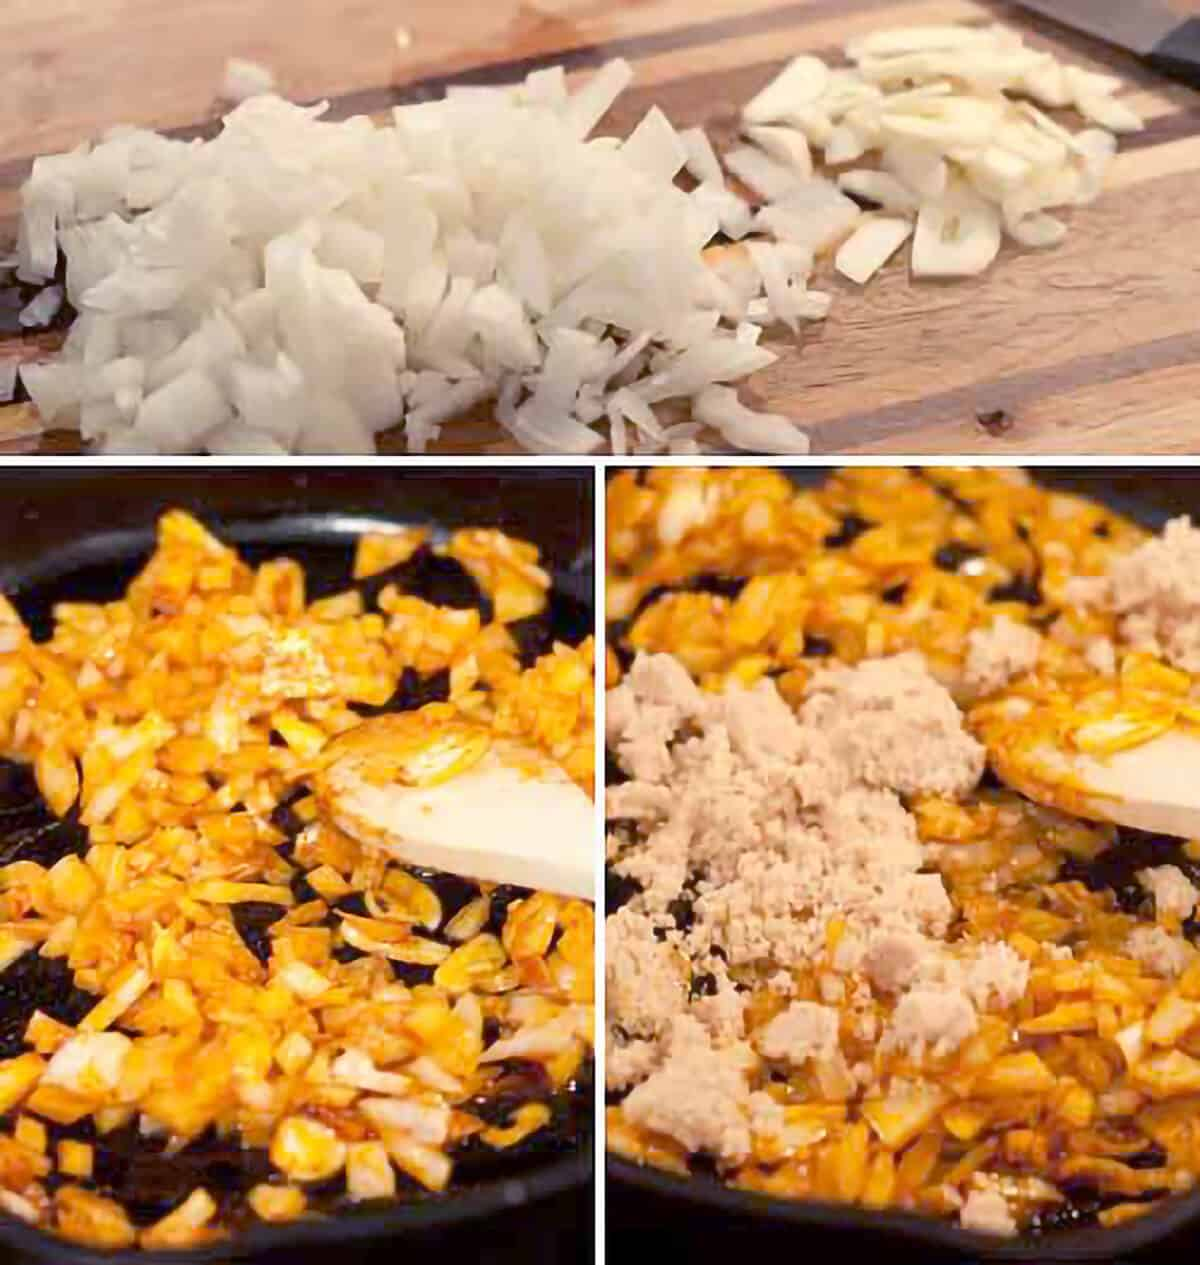 Cooking onions, garlic, and brown sugar in a skillet.